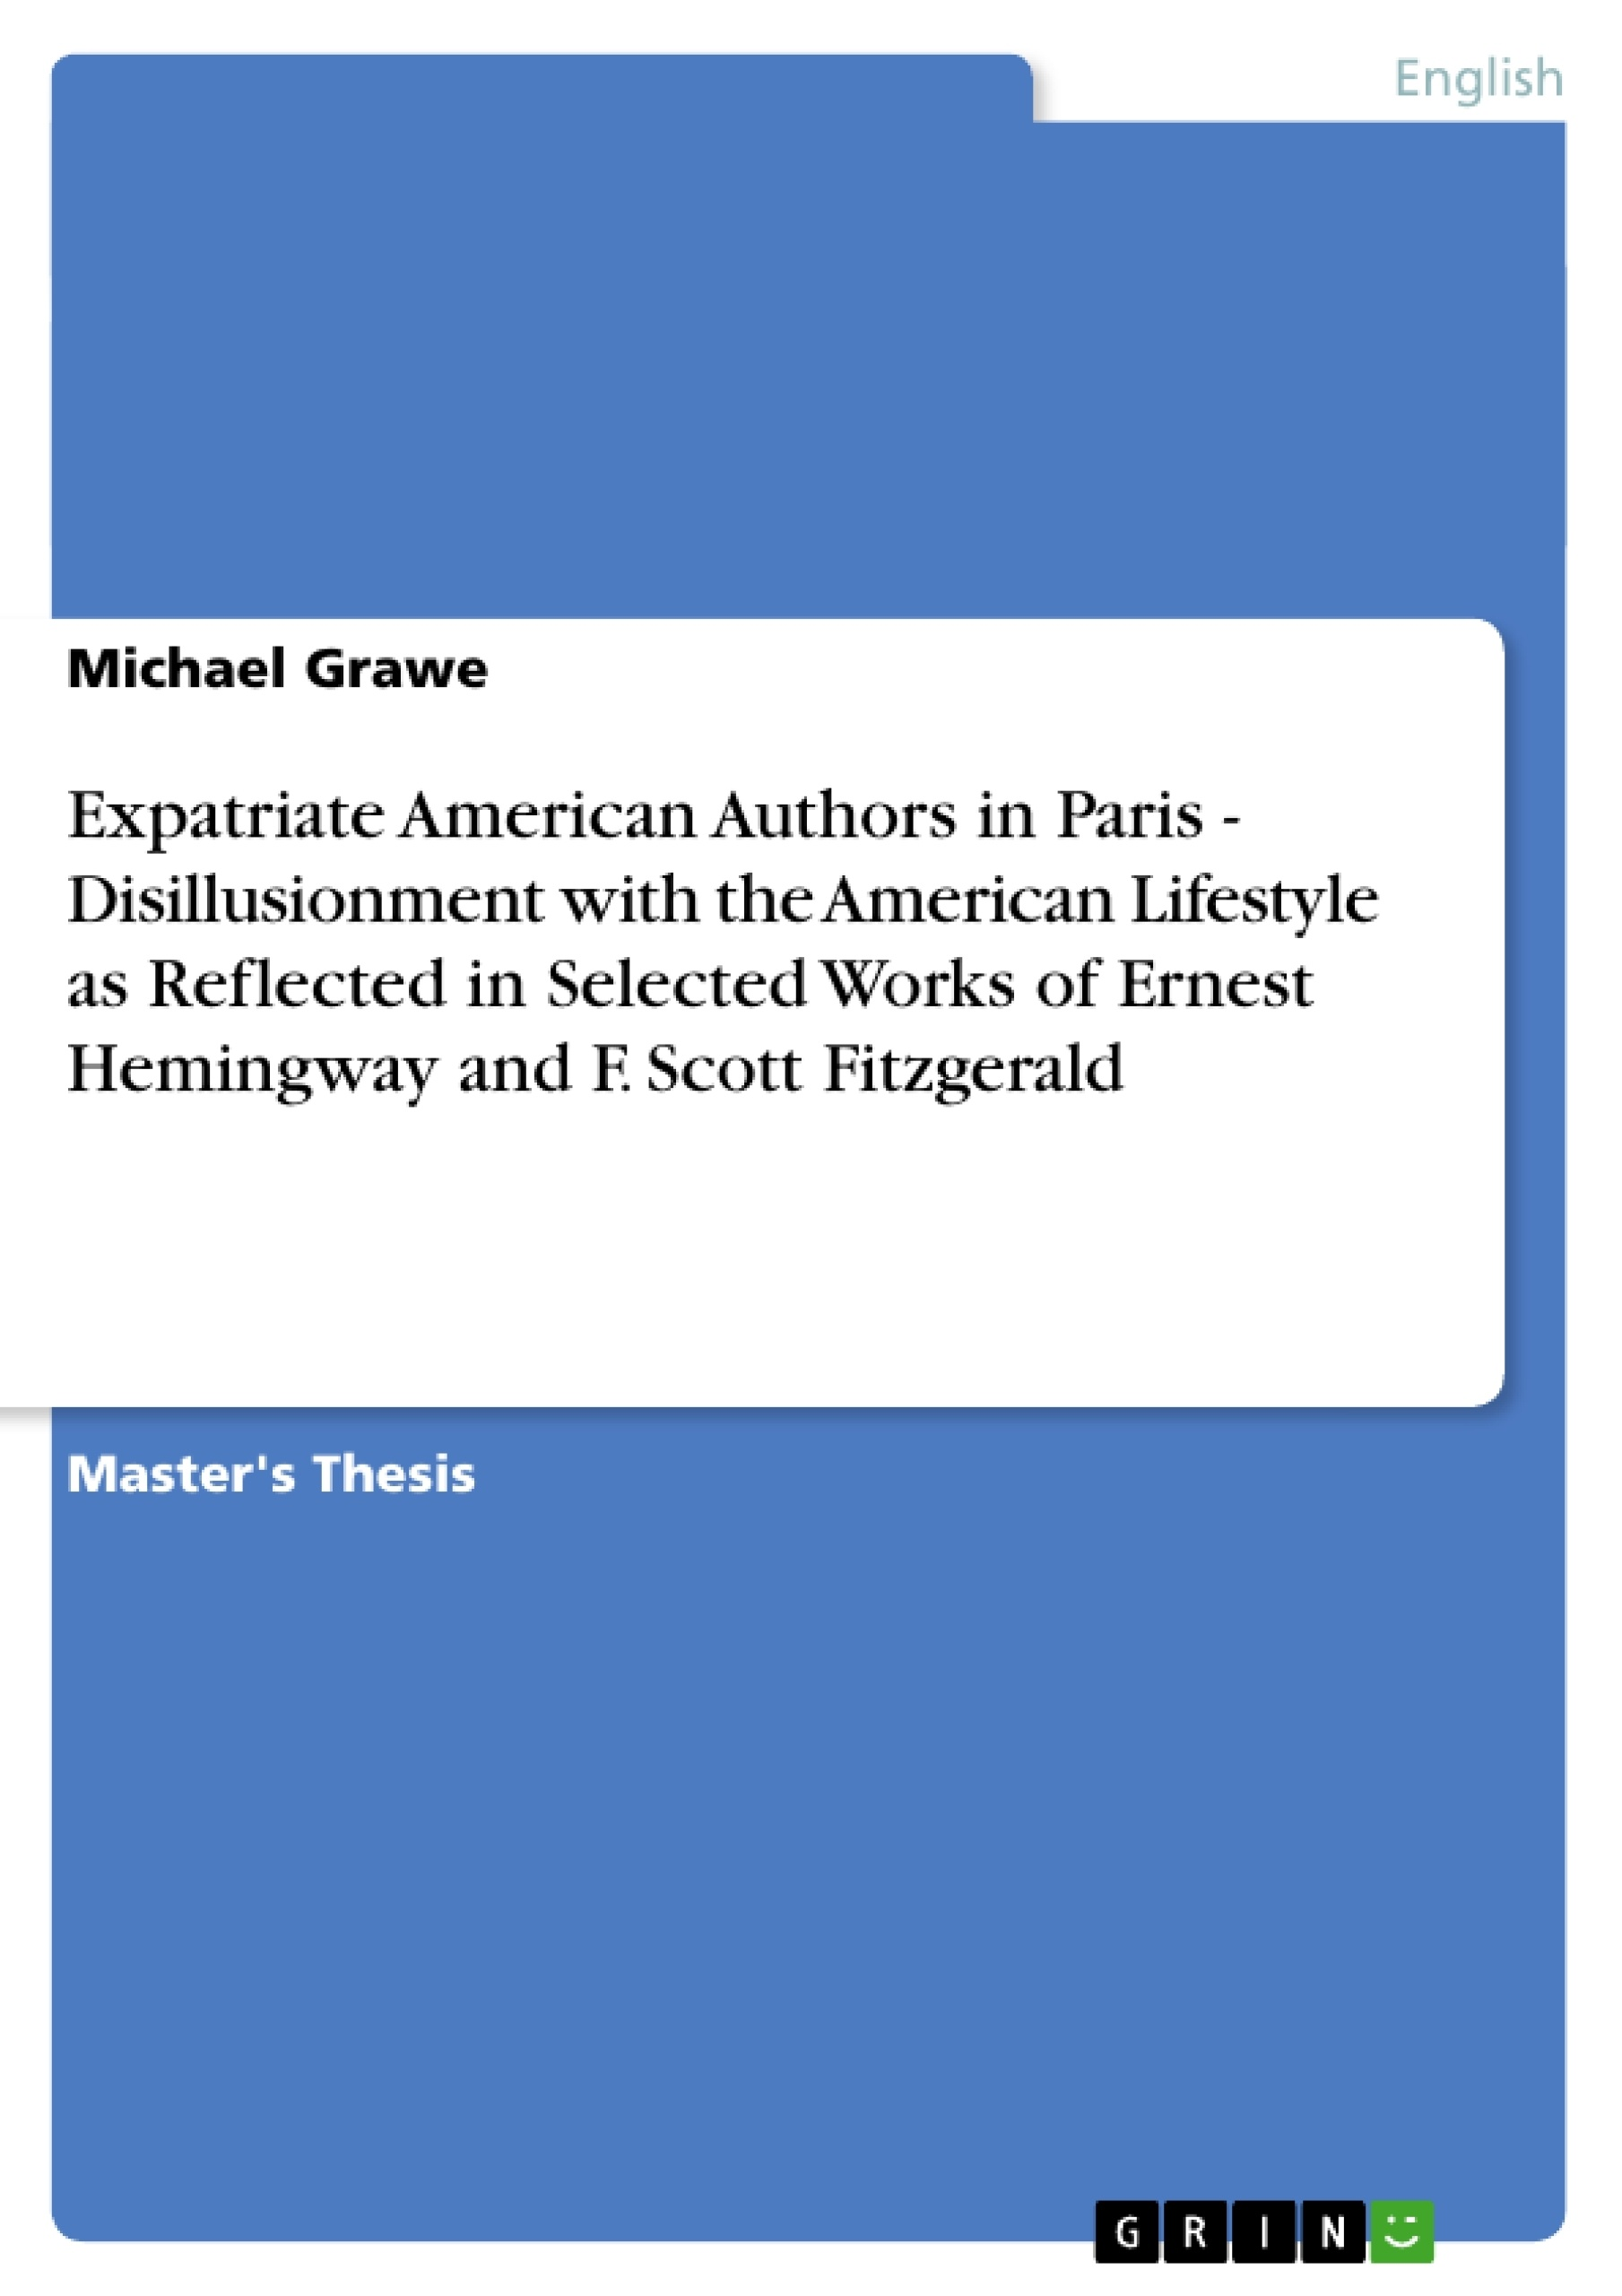 expatriate thesis University of wisconsin milwaukee uwm digital commons theses and dissertations 8-1-2012 a three-stage process model of self-initiated expatriate career transitions: a.